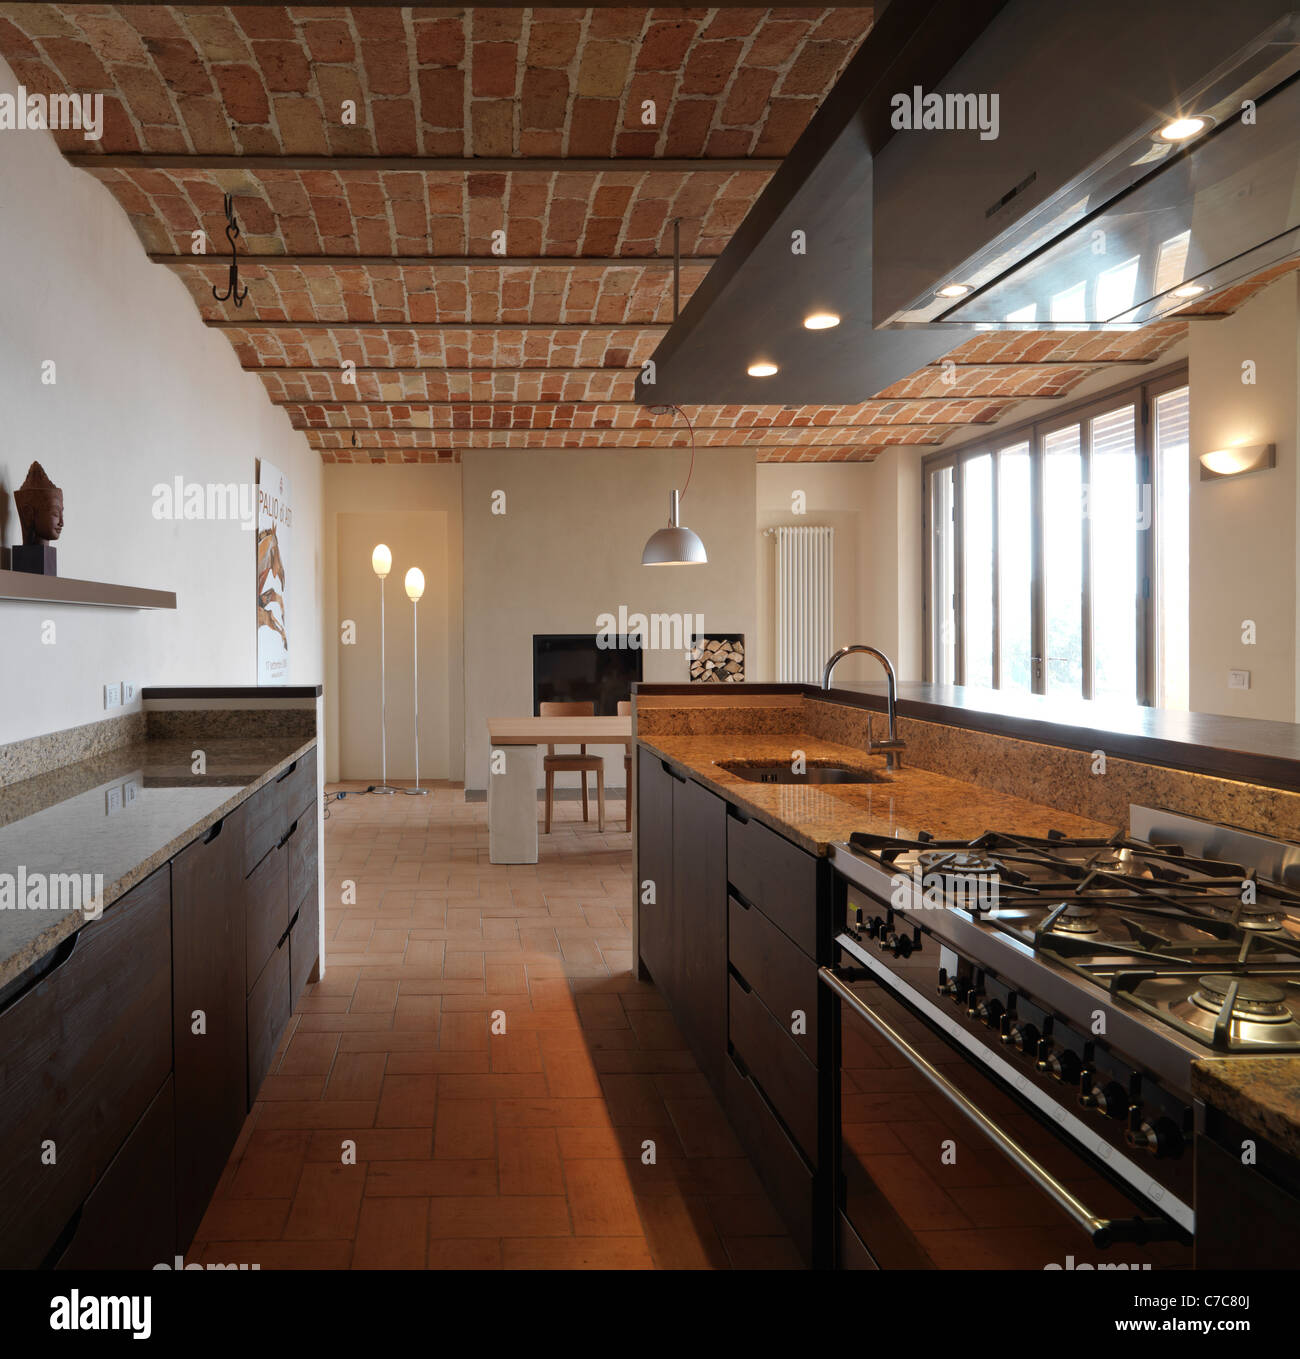 modern kitchen in the rustic house with terracotta ceiling and